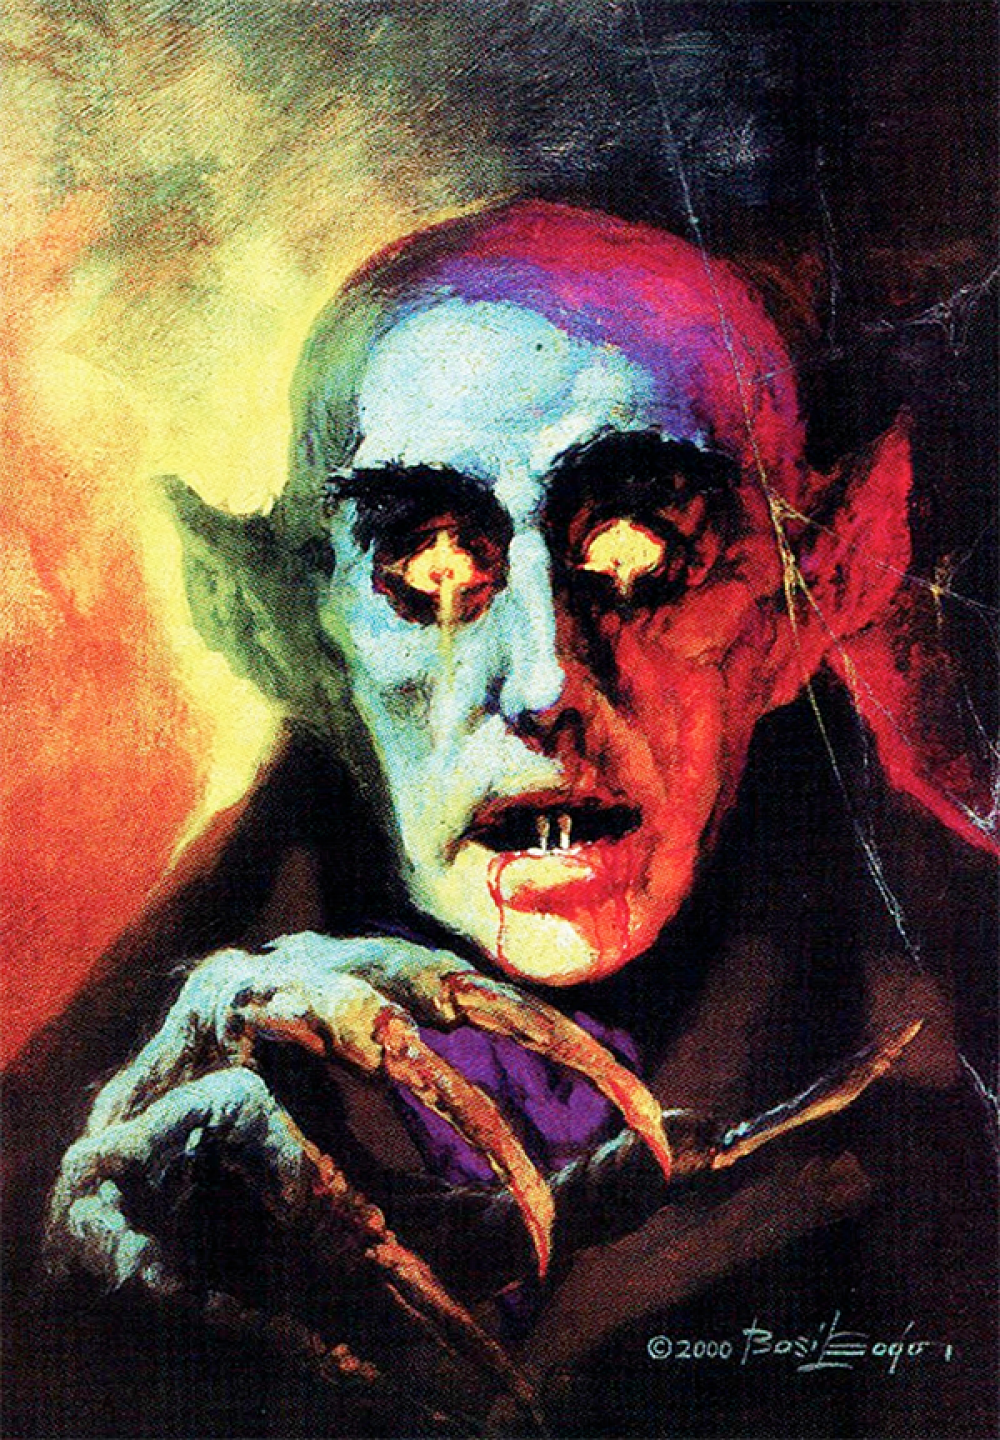 Nosferatu (1922) Count Orlok portrait by Famous Monsters of Filmland magazine illustrator Basil Gogos, 2000